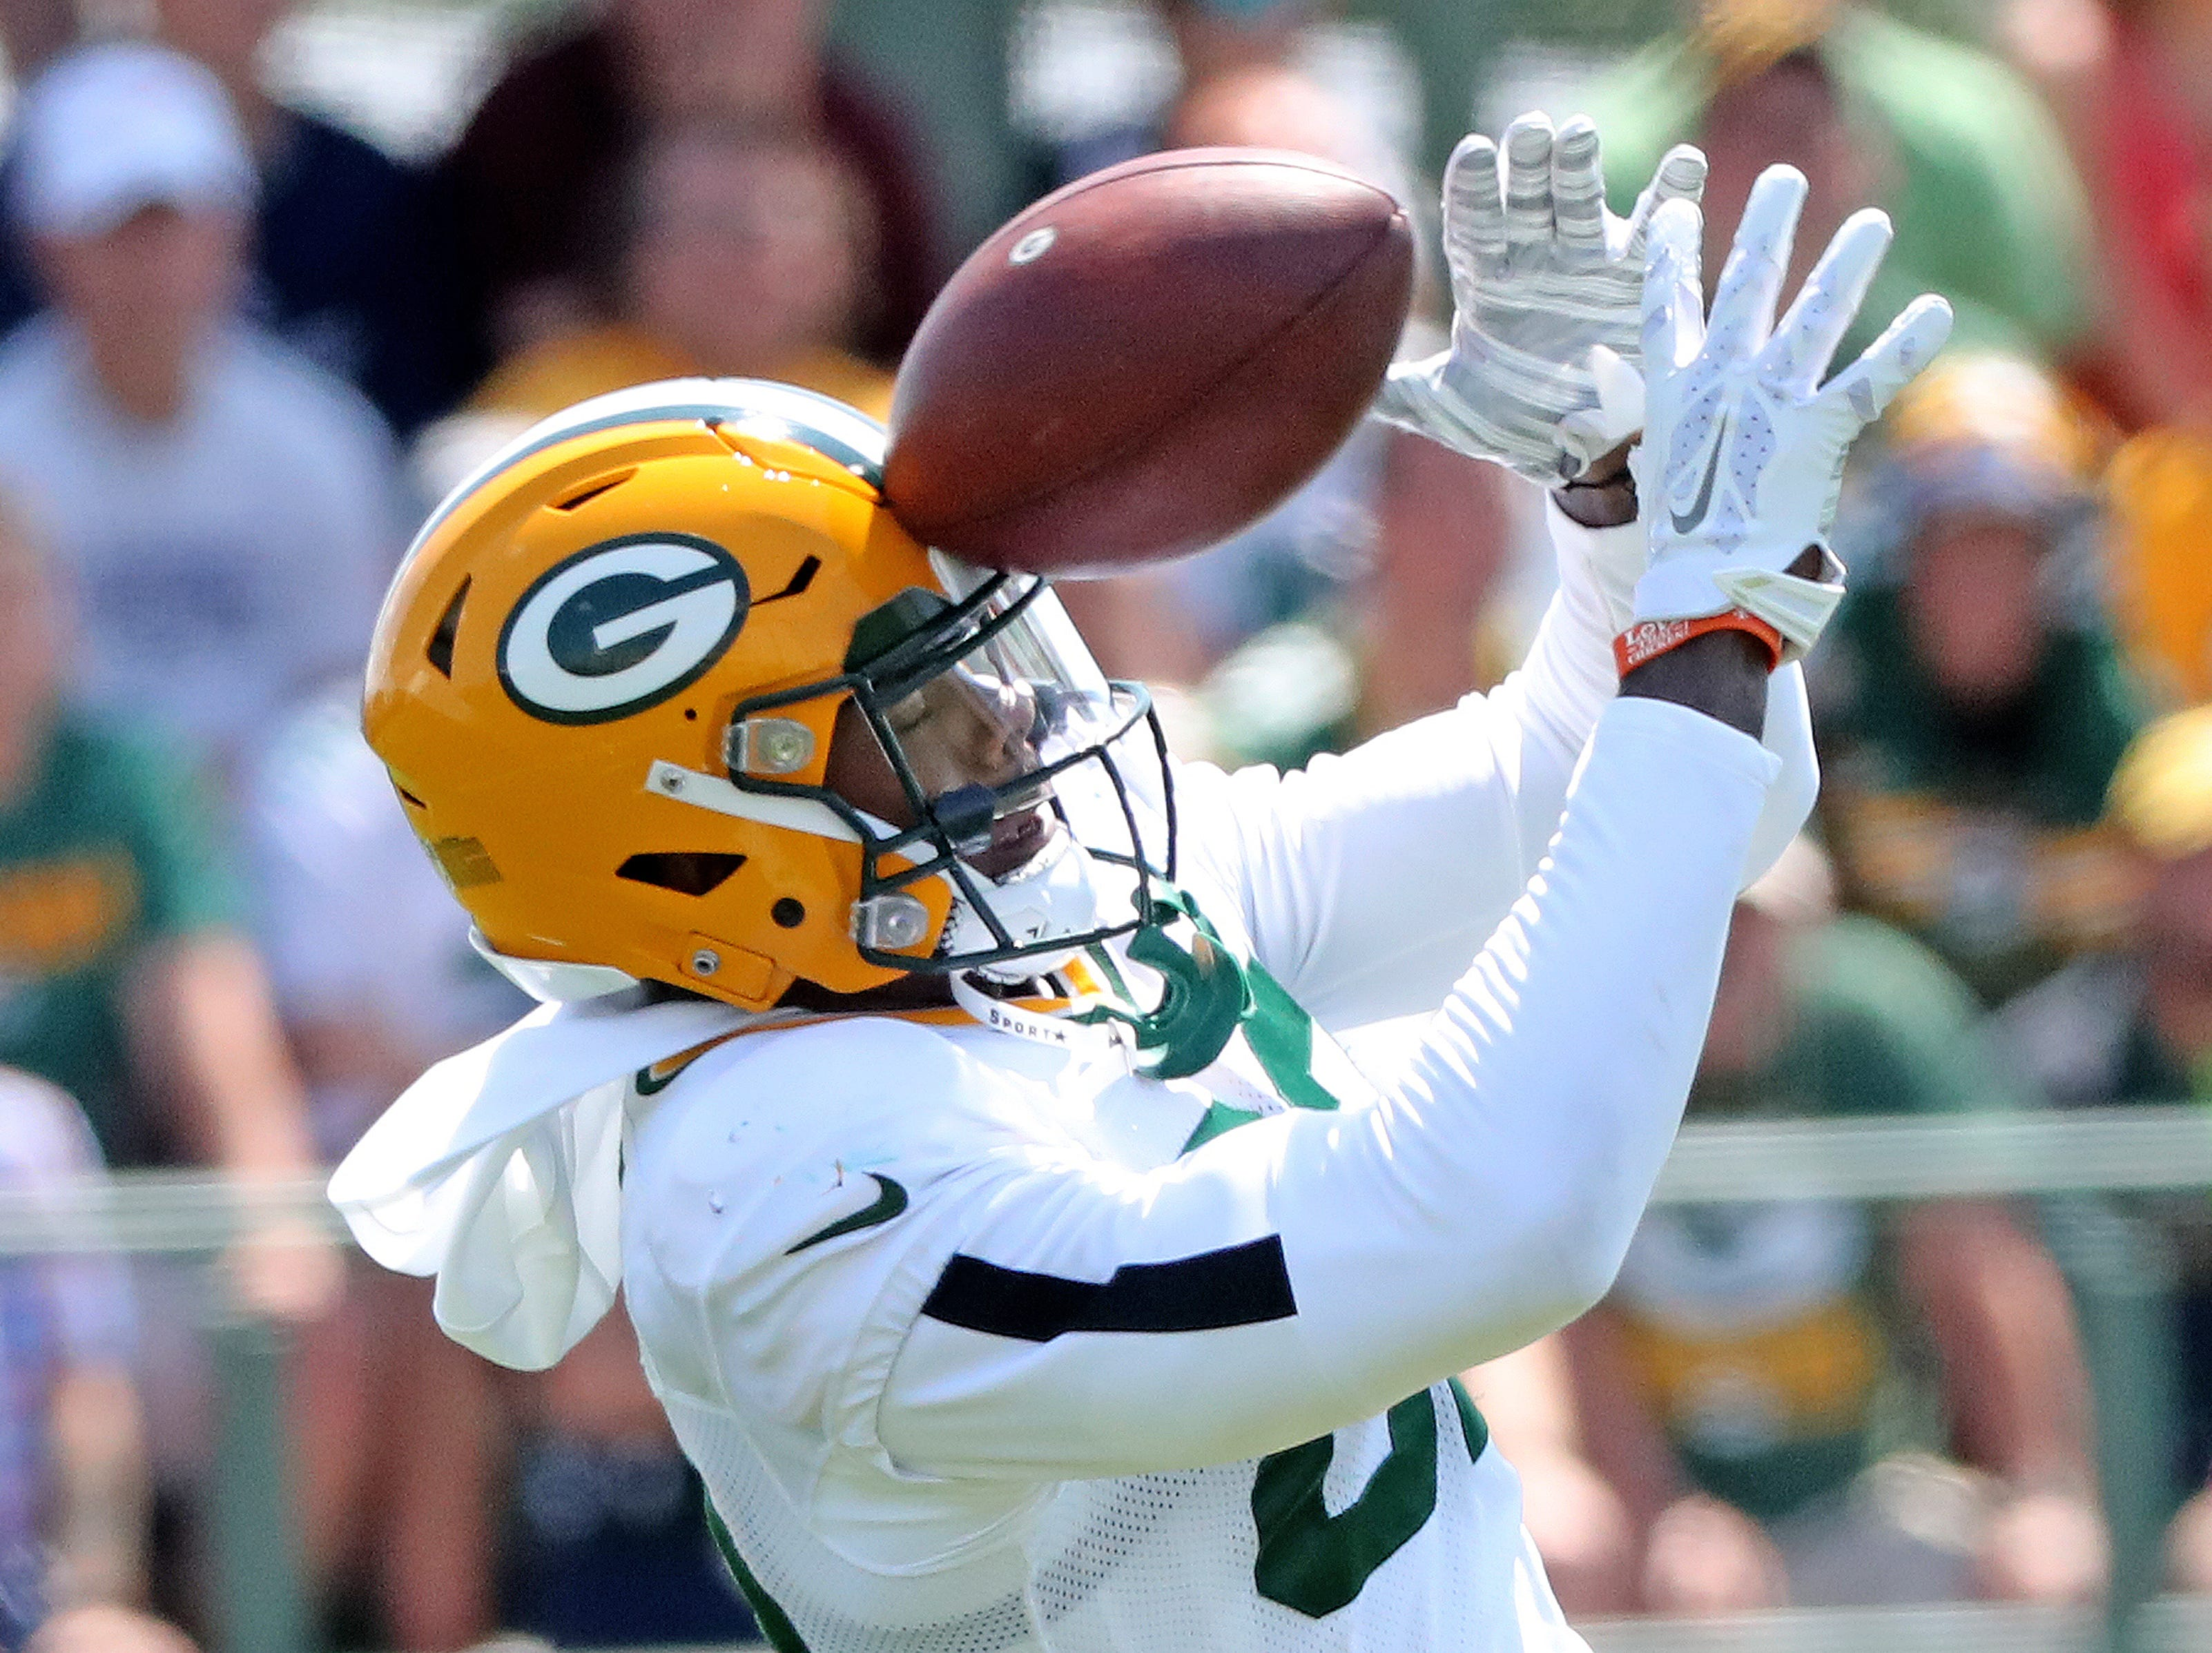 Green Bay Packers wide receiver J'Mon Moore (82) takes one to the forehead during Green Bay Packers Training Camp Saturday, July 28, 2018 at Ray Nitschke Field in Ashwaubenon, Wis